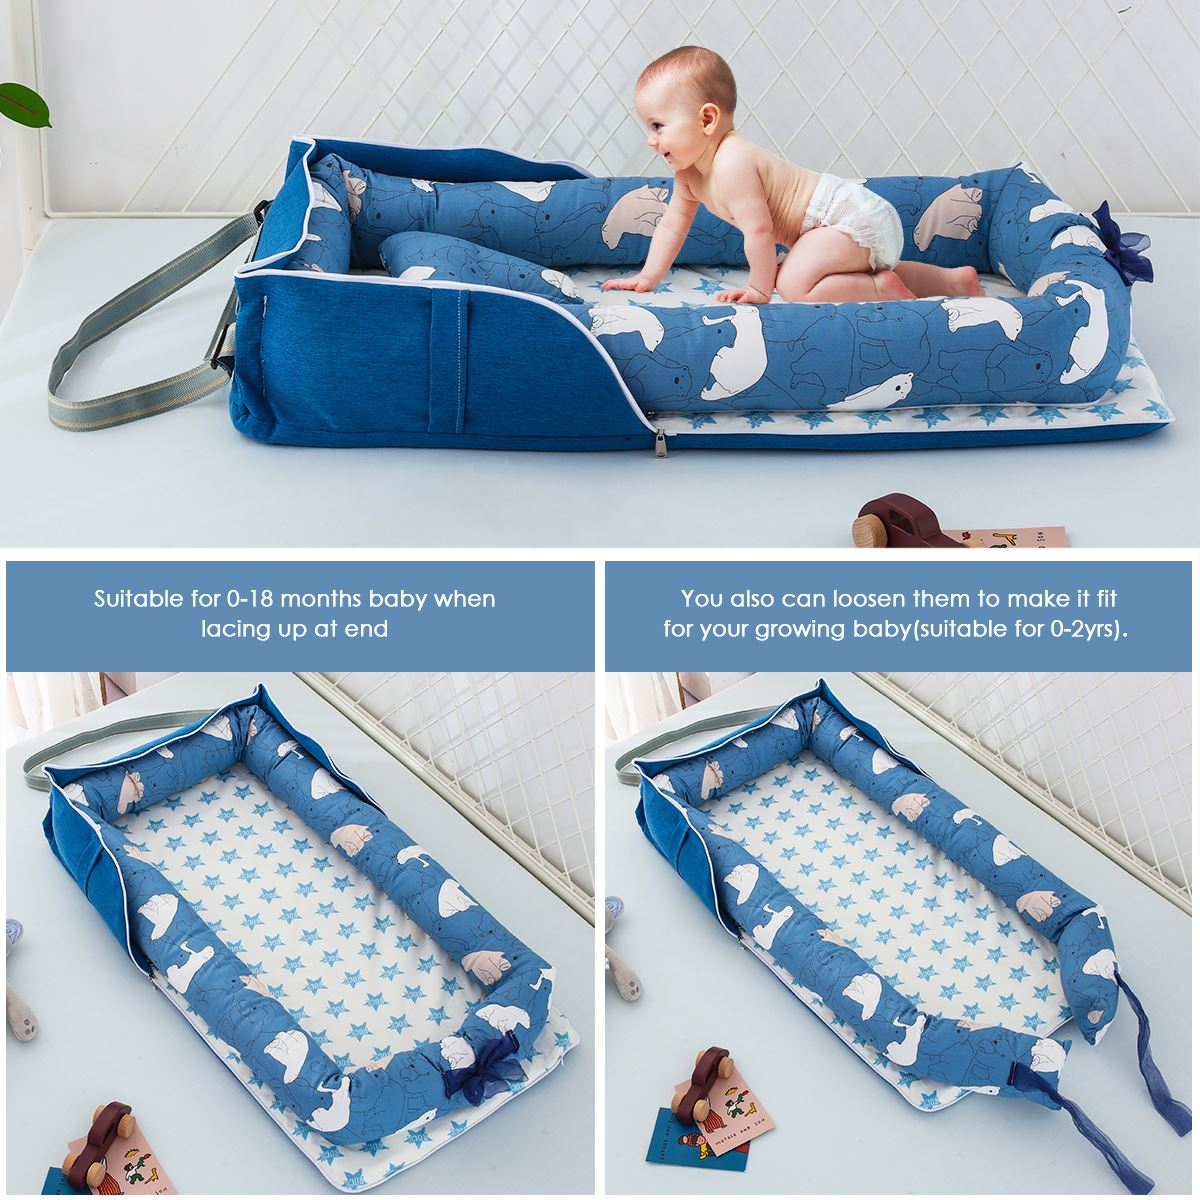 Baby Lounger Folding Portable Baby Nest Bed For Boys Girls Travel Bed Infant Cotton Cradle Crib Baby Newborn Bed Travel Bedroom